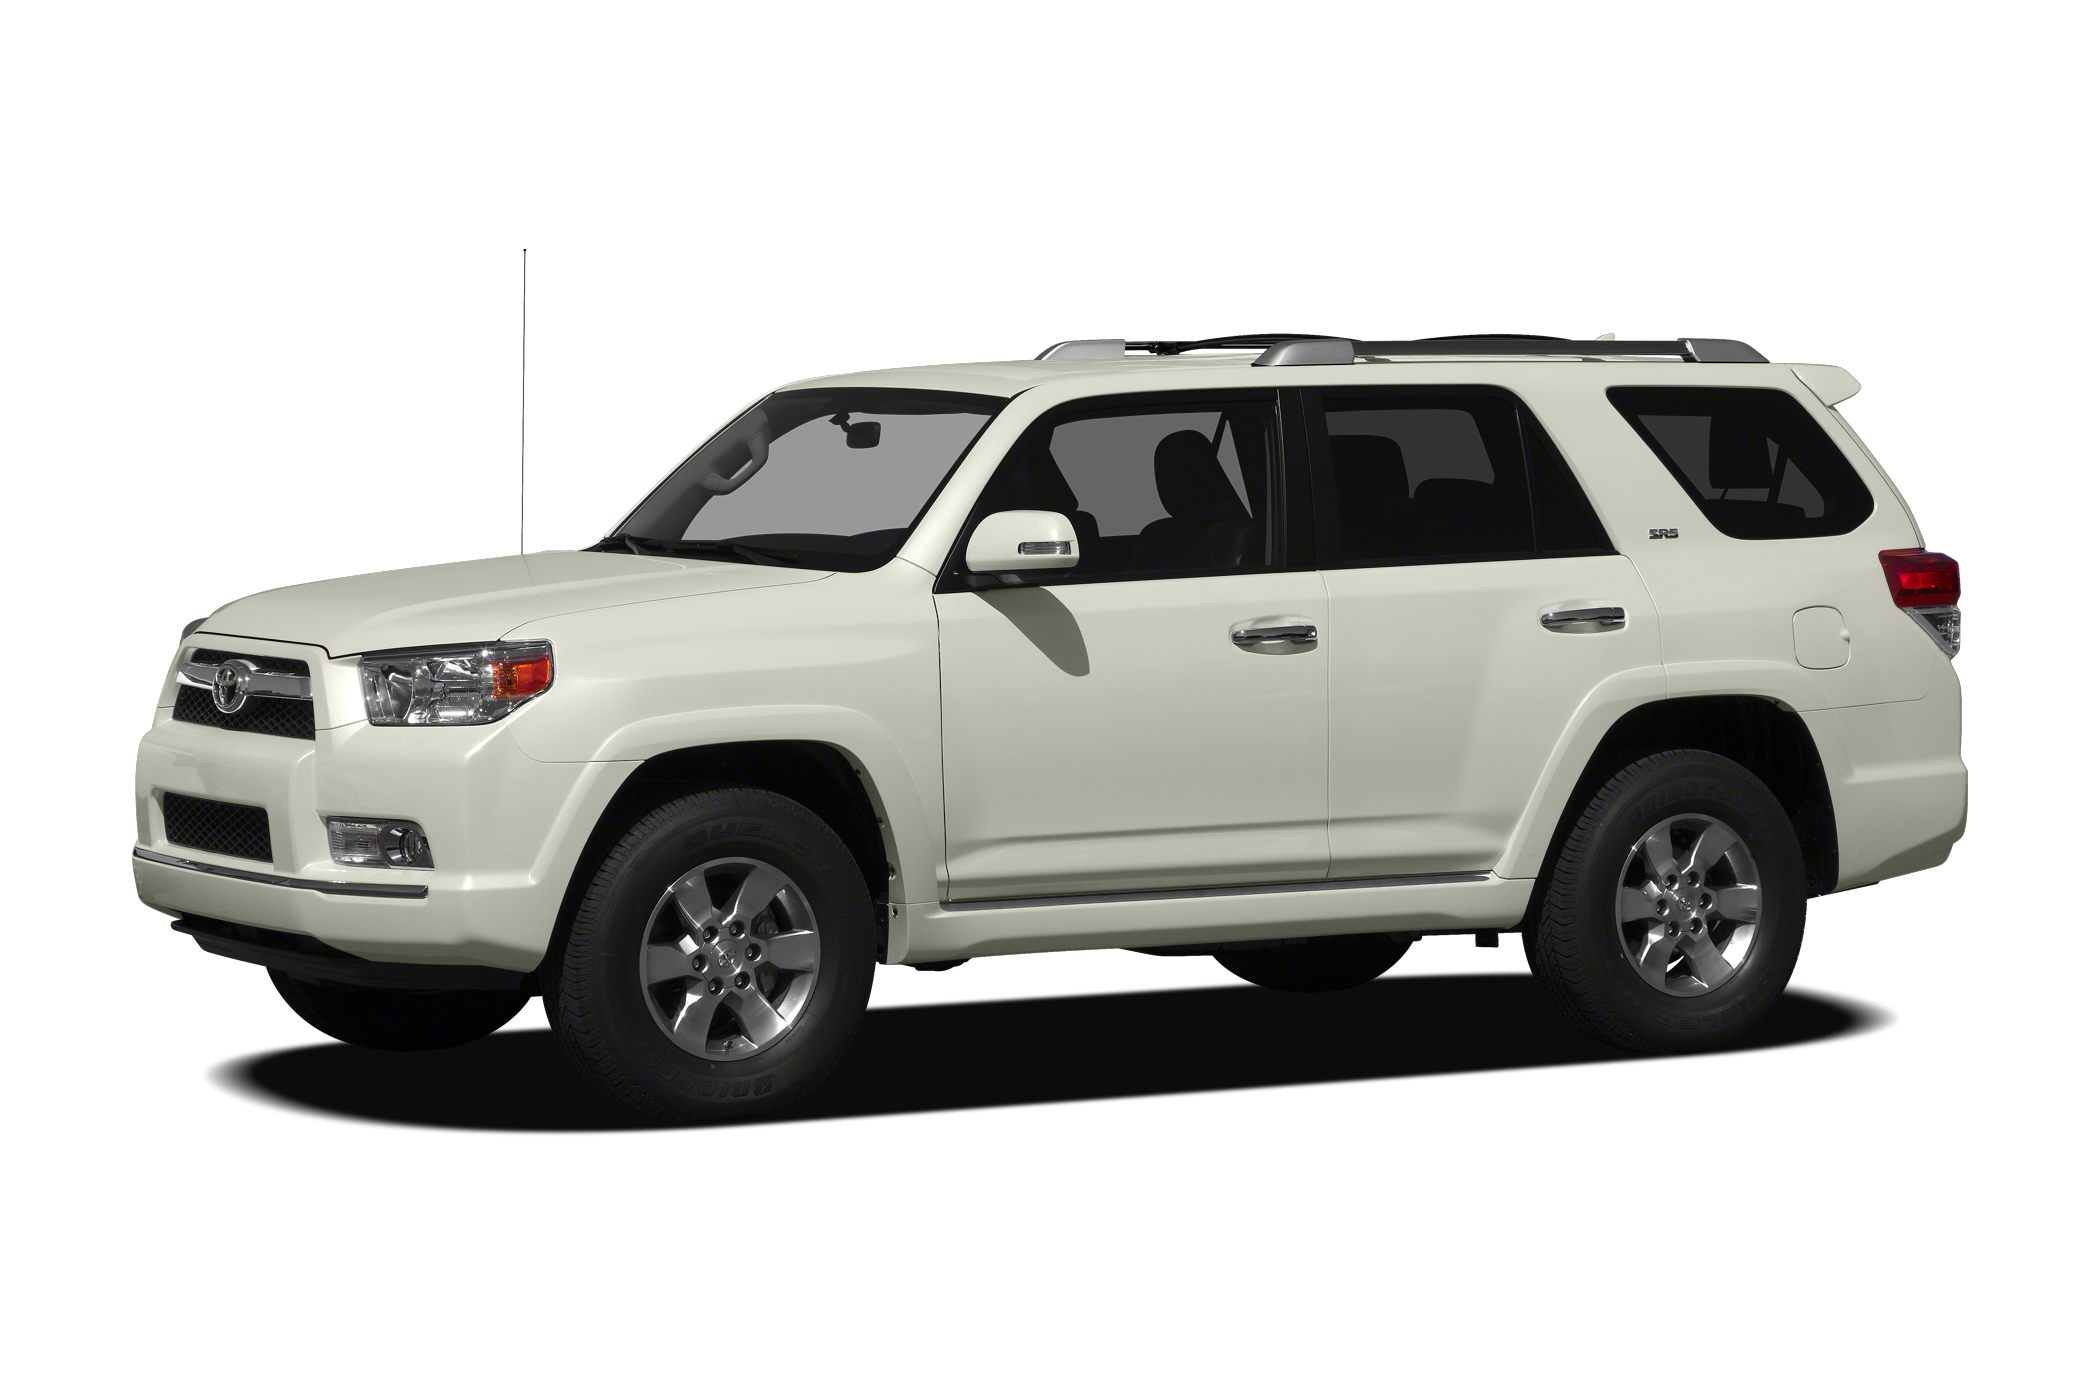 2010 Toyota 4Runner SR5 SUV for sale in Statesboro for $27,192 with 66,807 miles.